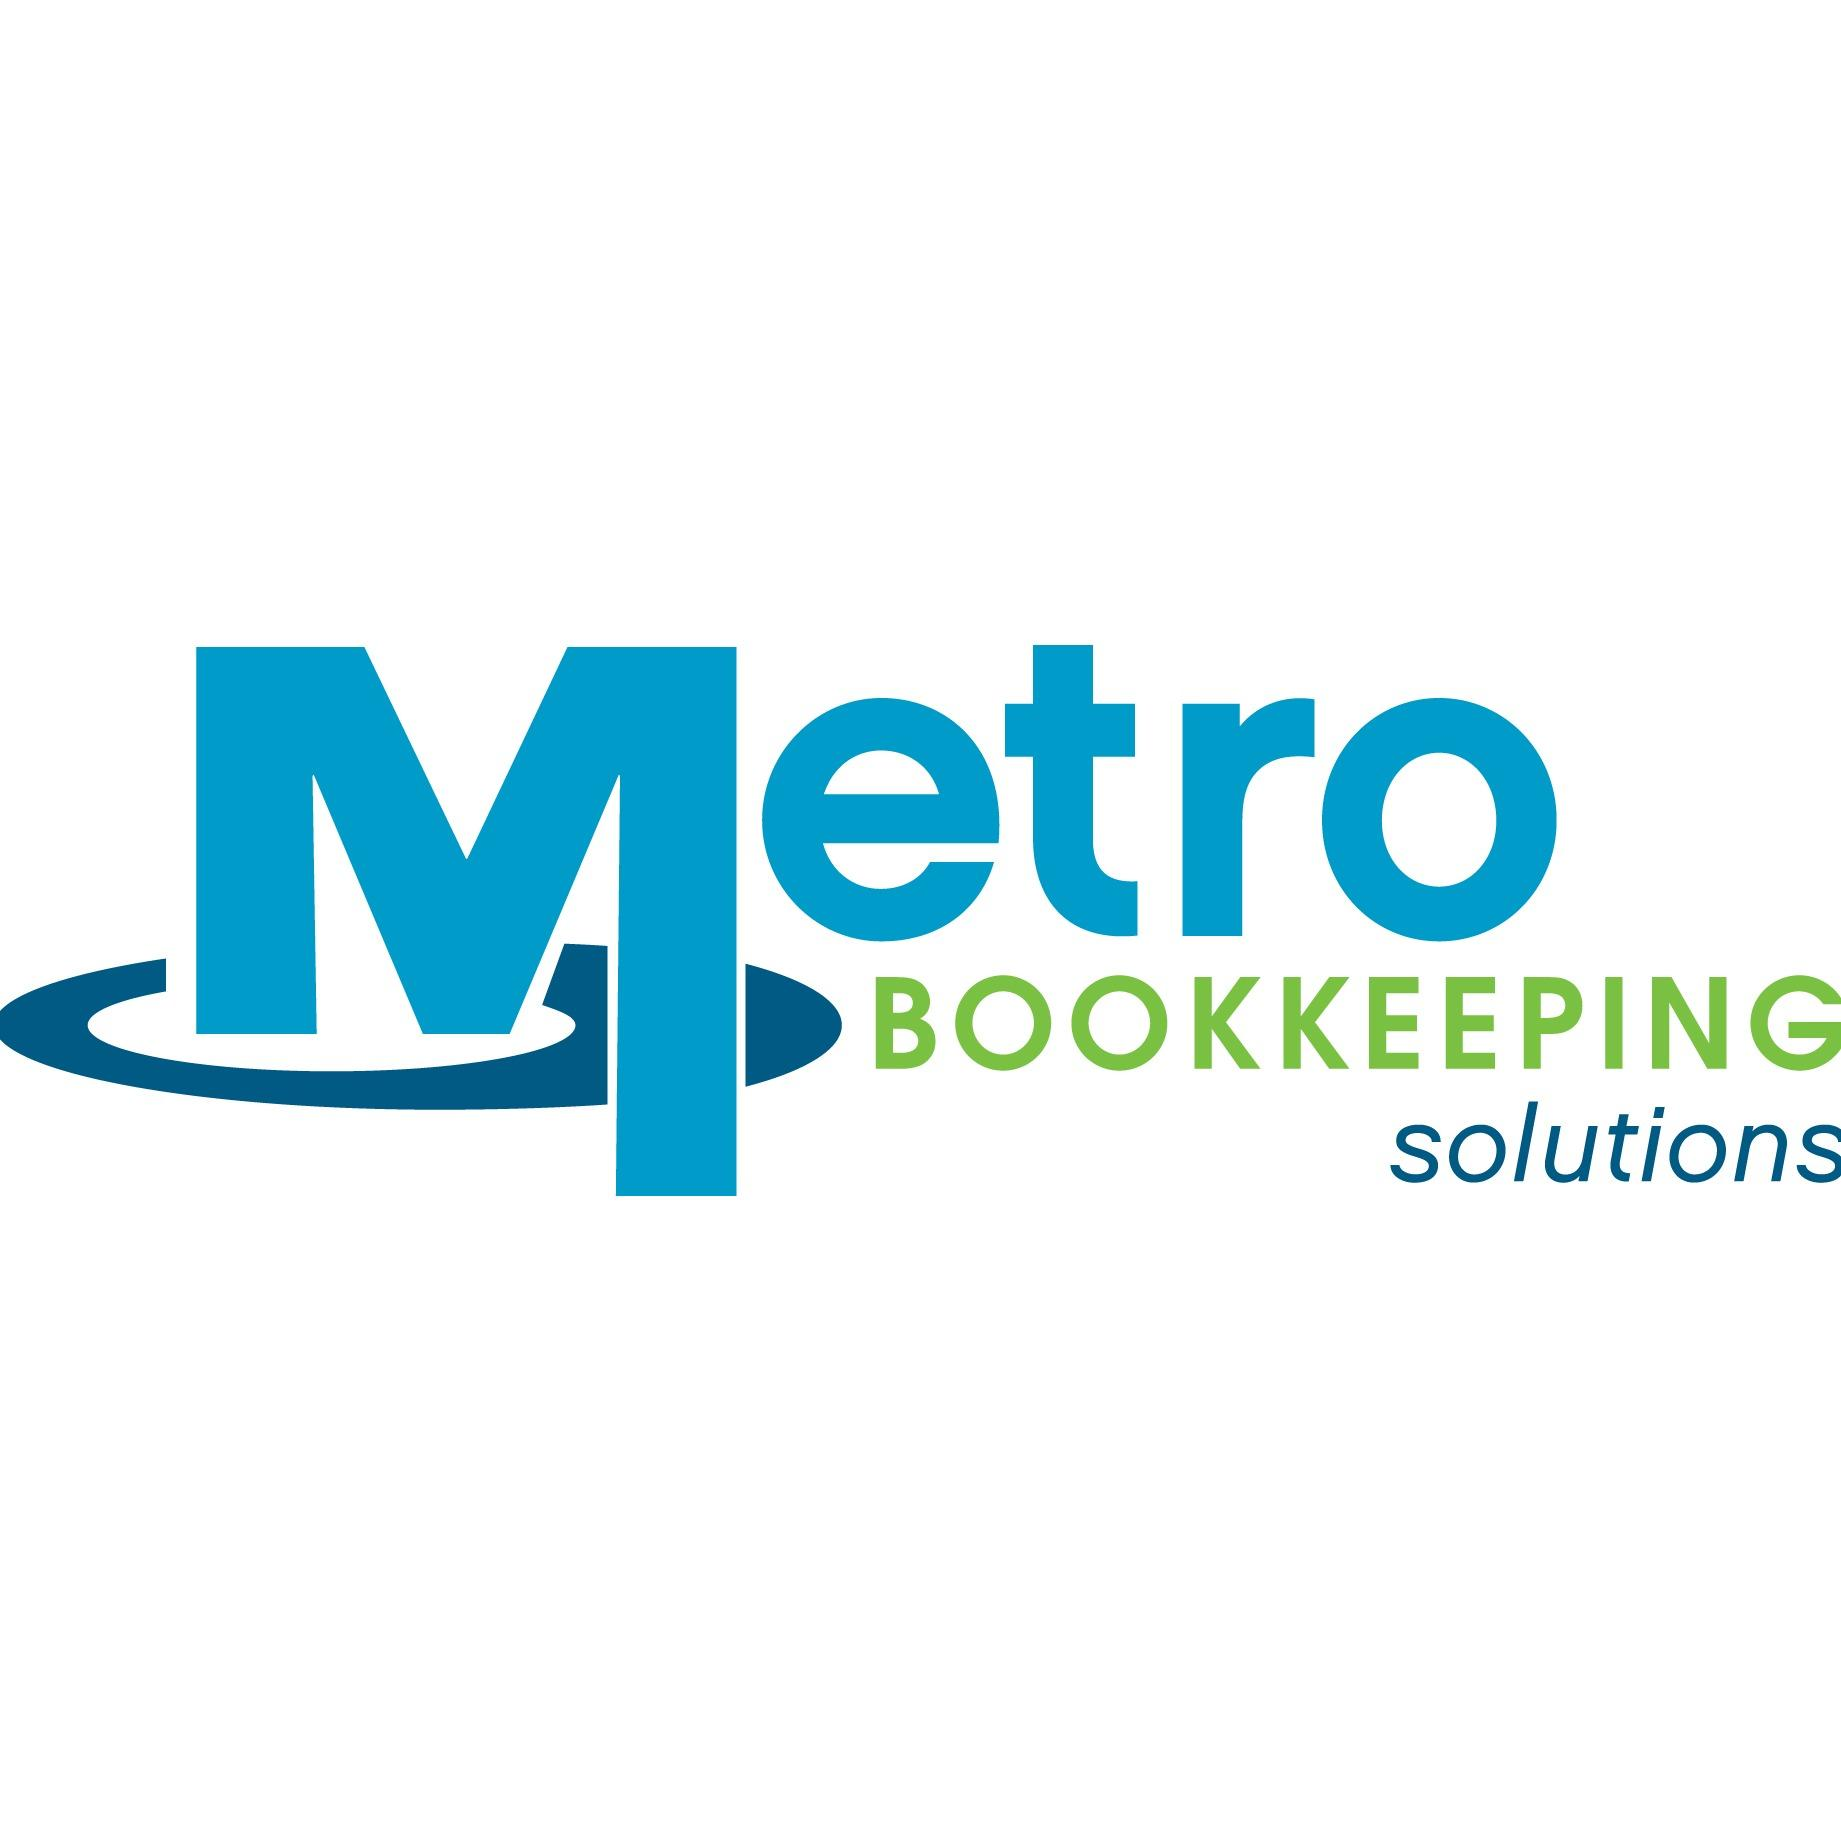 Metro Bookkeeping Solutions